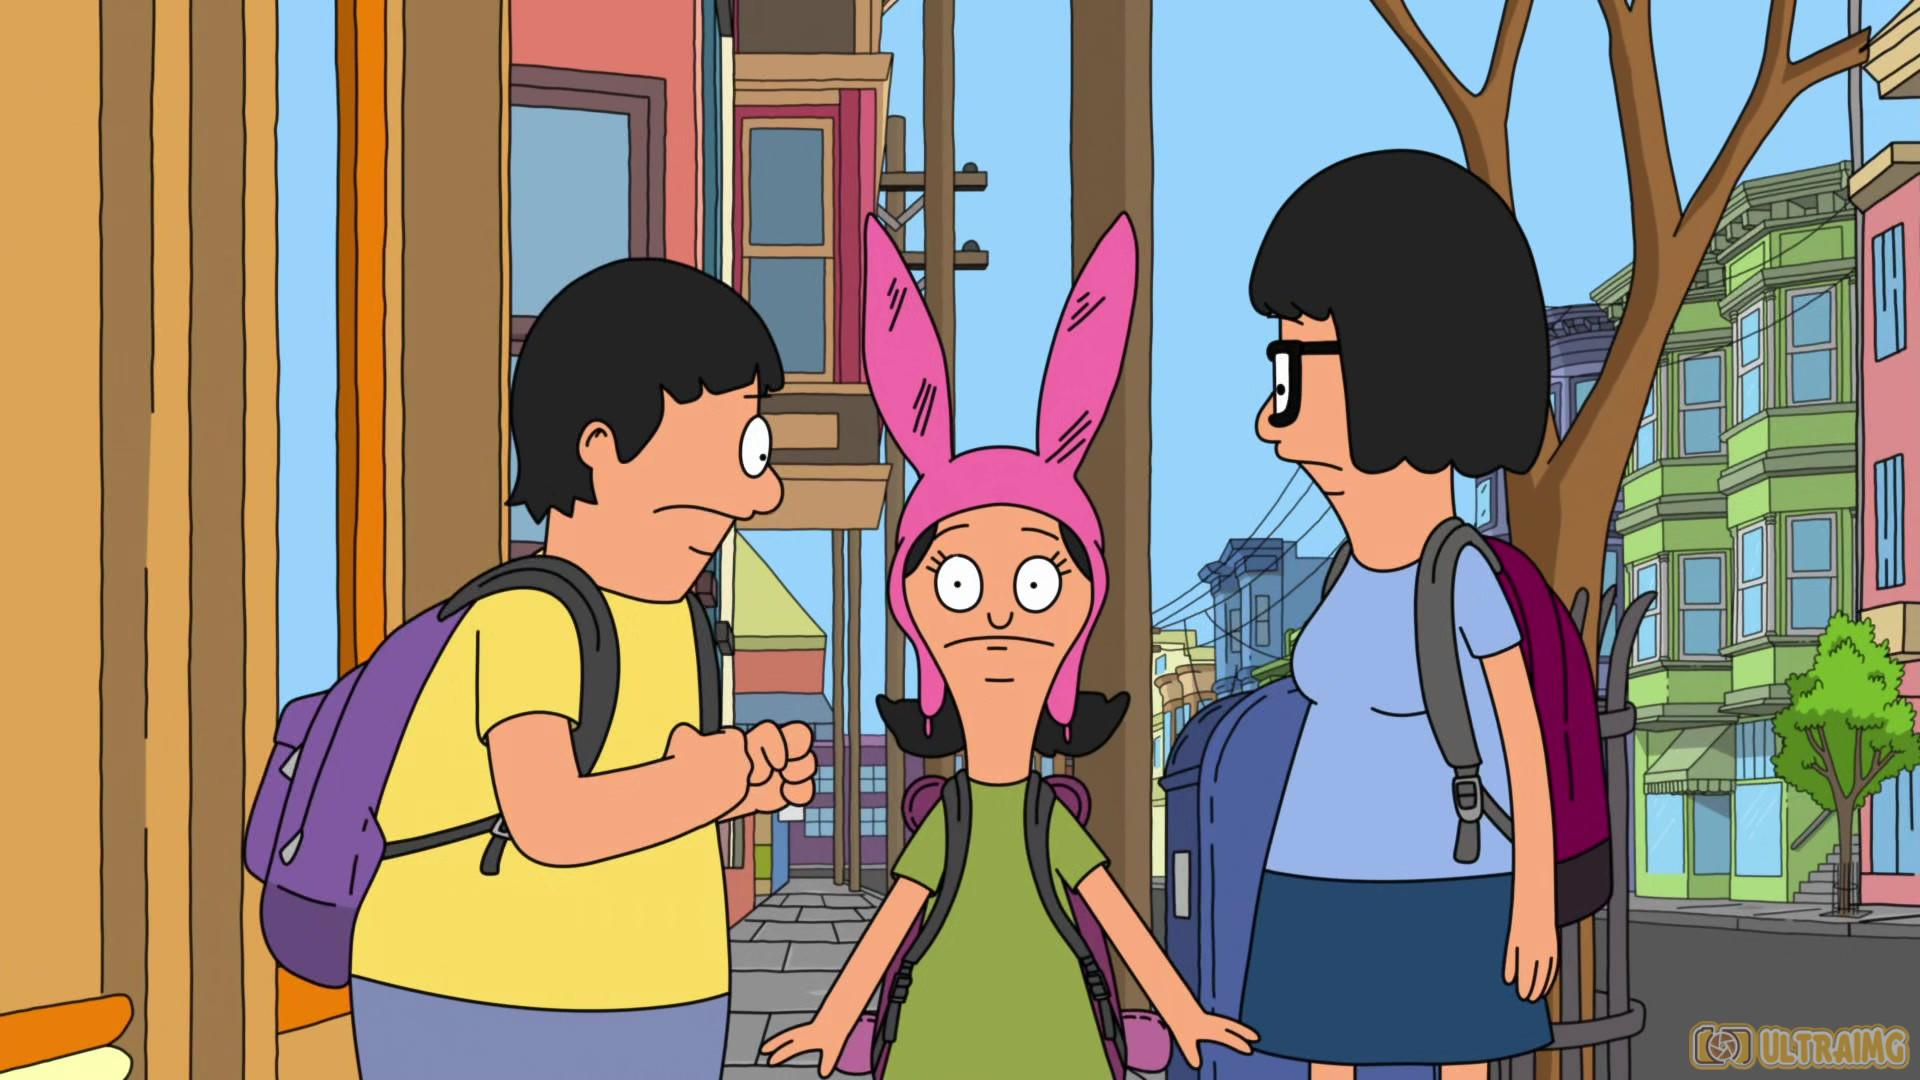 Download Bobs Burgers Wallpaper Hd Backgrounds Download